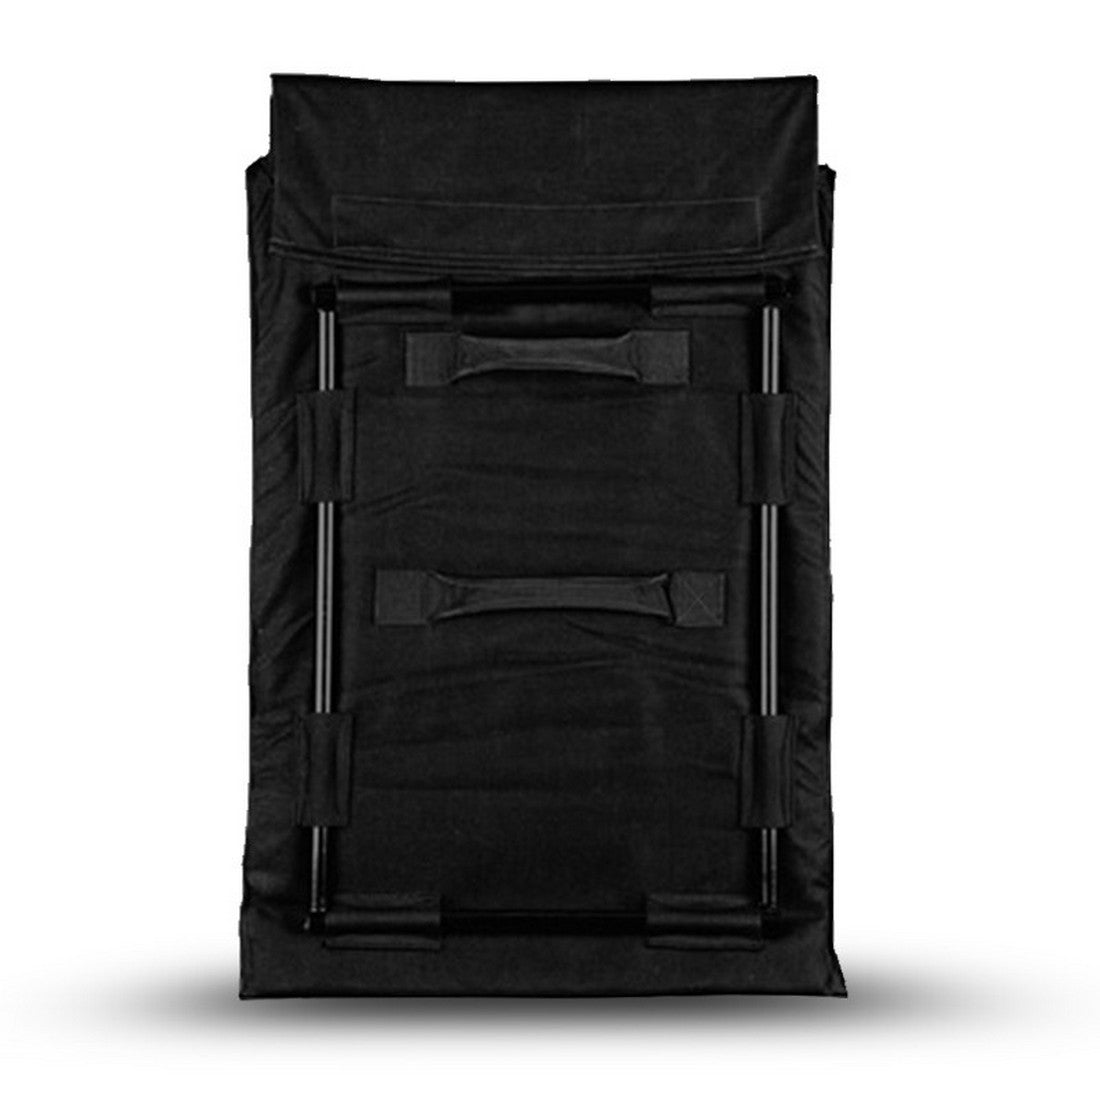 "KDH Mobile Defense Shield - 20""x40.5'' ( - Black)"